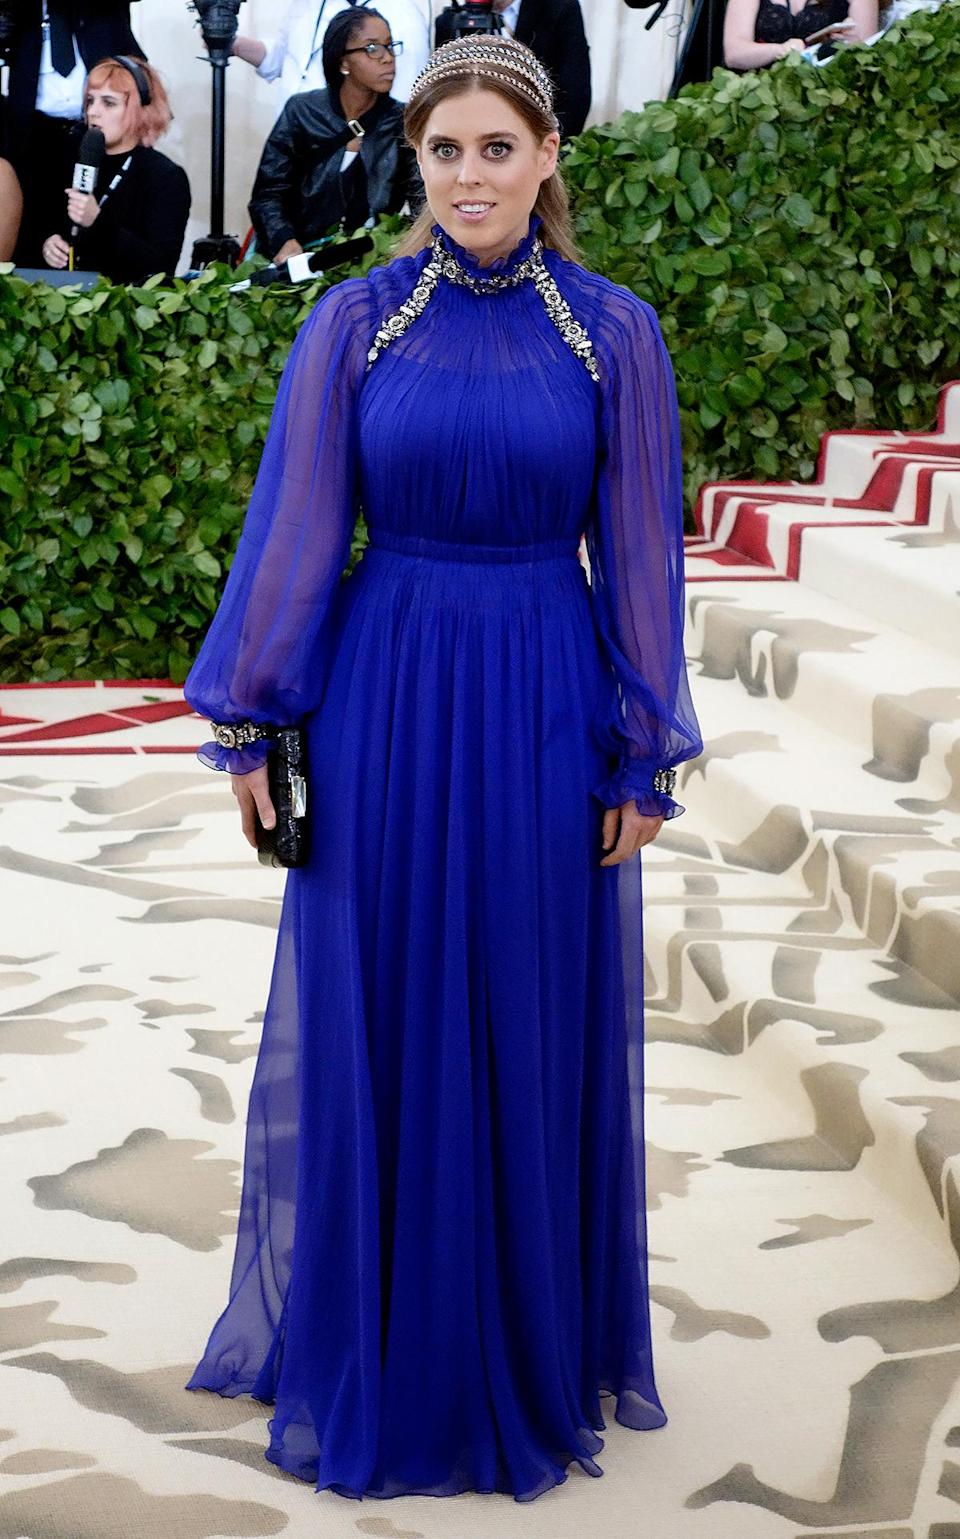 <p>In 2018, Princess Beatrice attended the Met Gala in a royal blue gown by Alberta Ferretti that was fit for the theme: Heavenly Bodies: Fashion & The Catholic Imagination.</p>